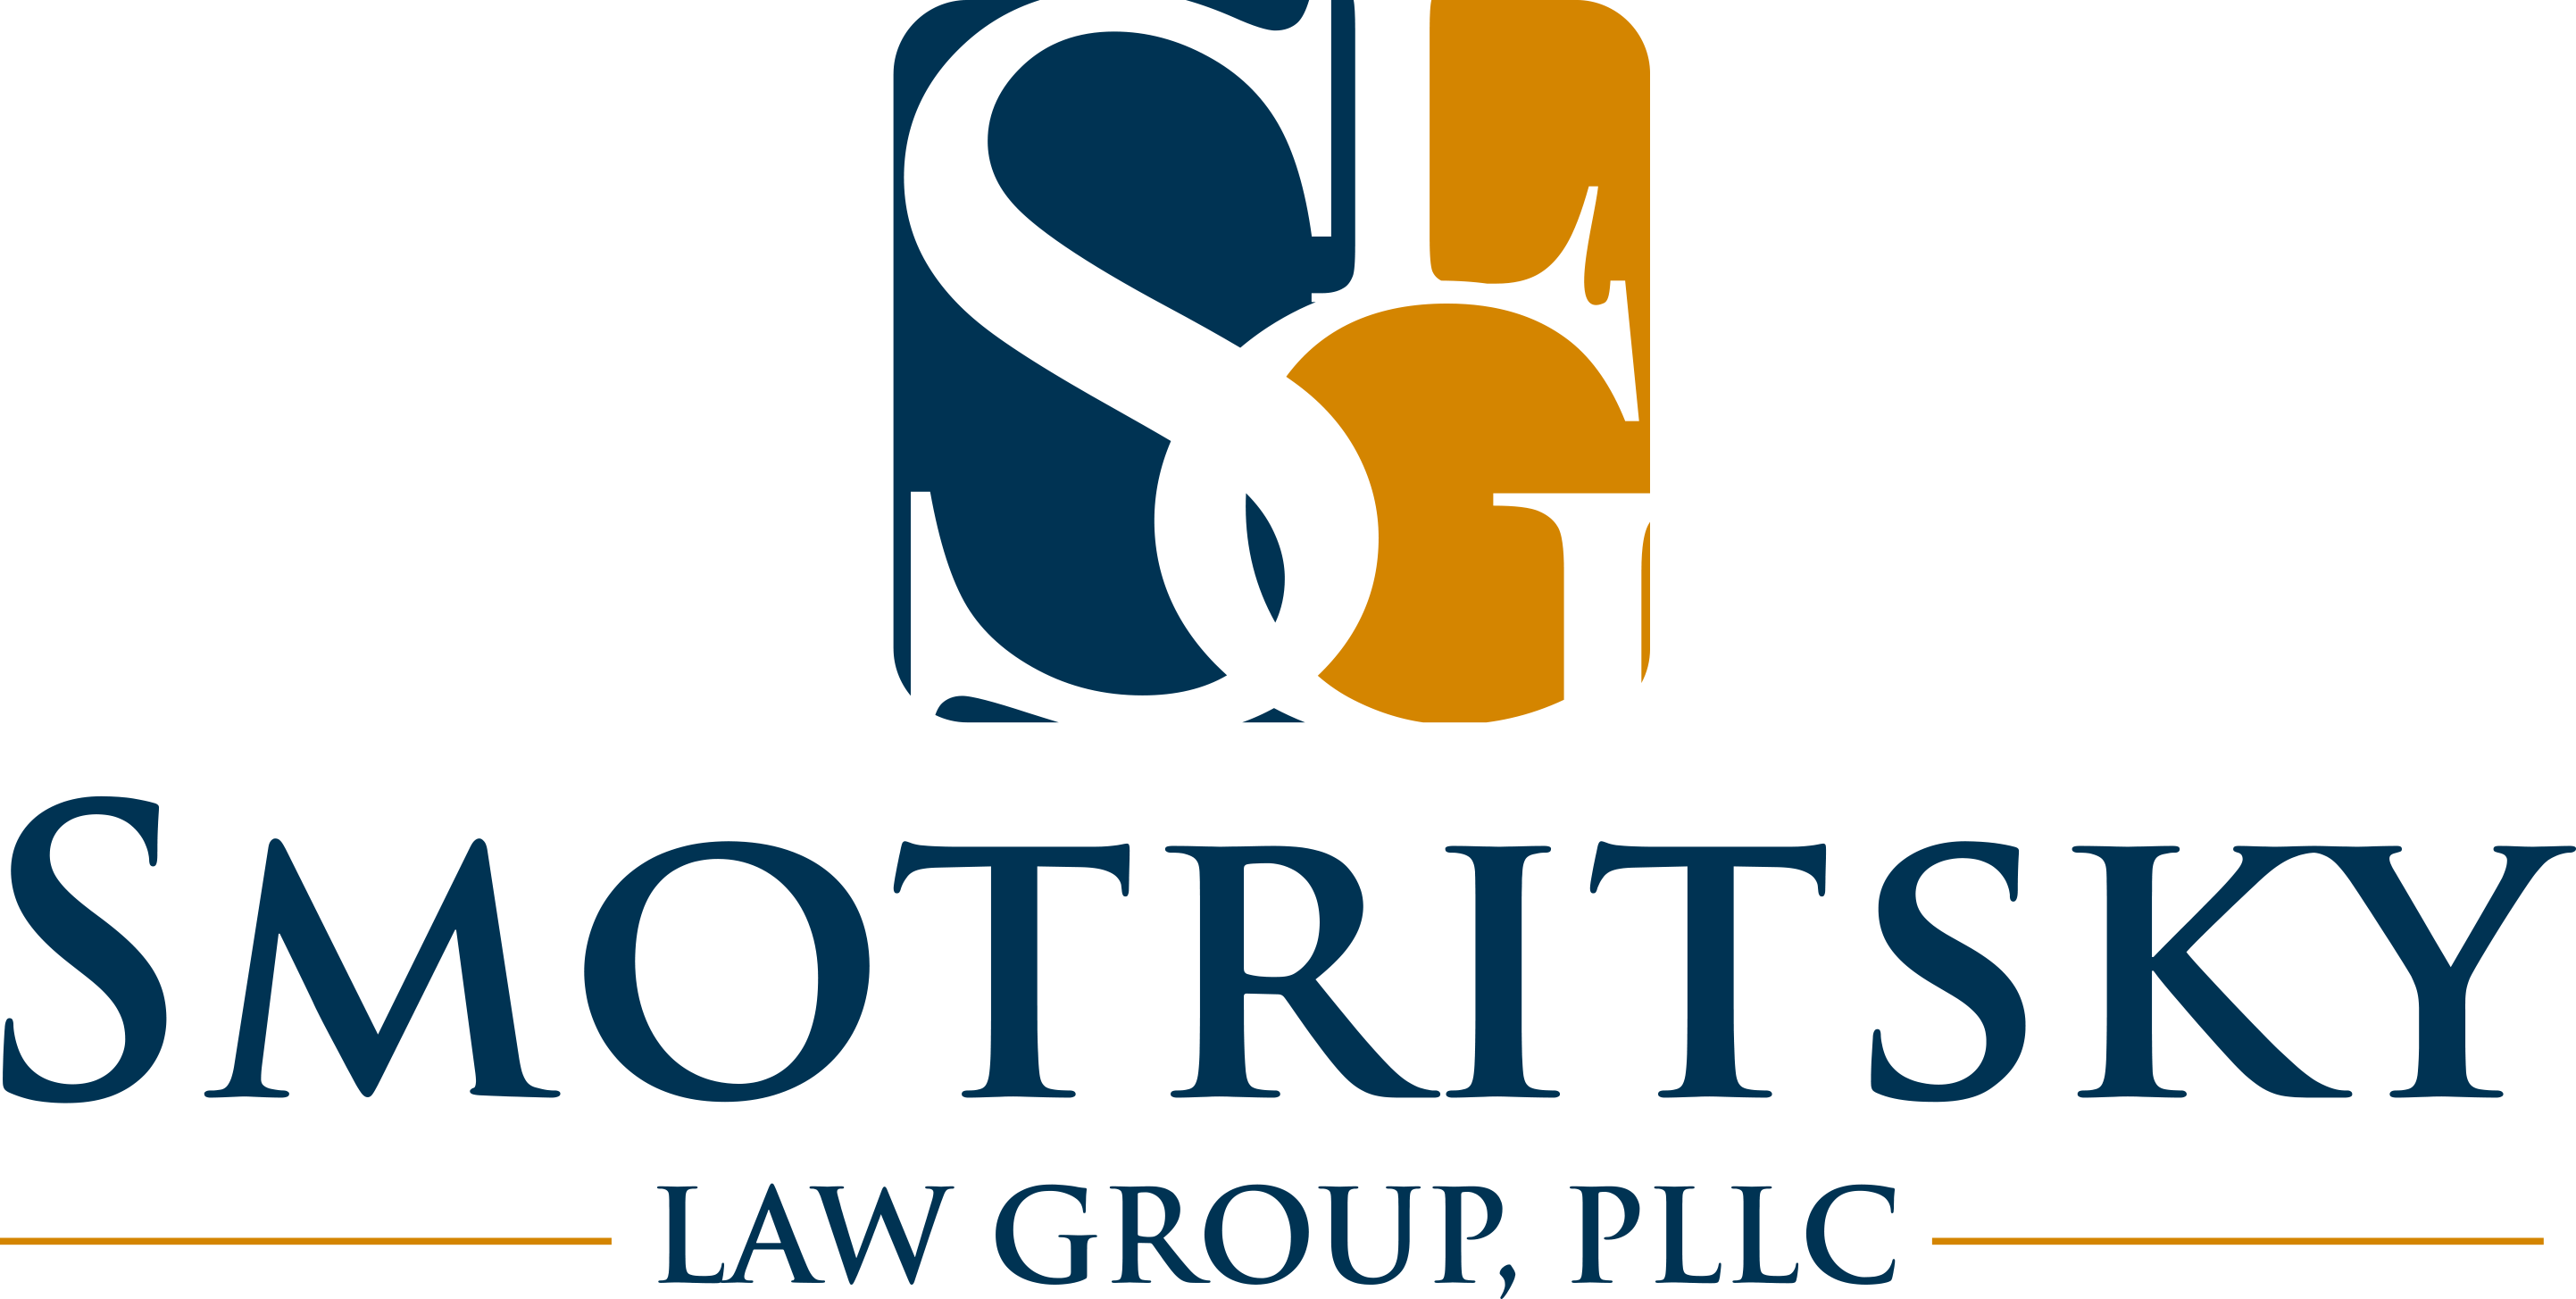 Smotritsky Law Group, PLLC